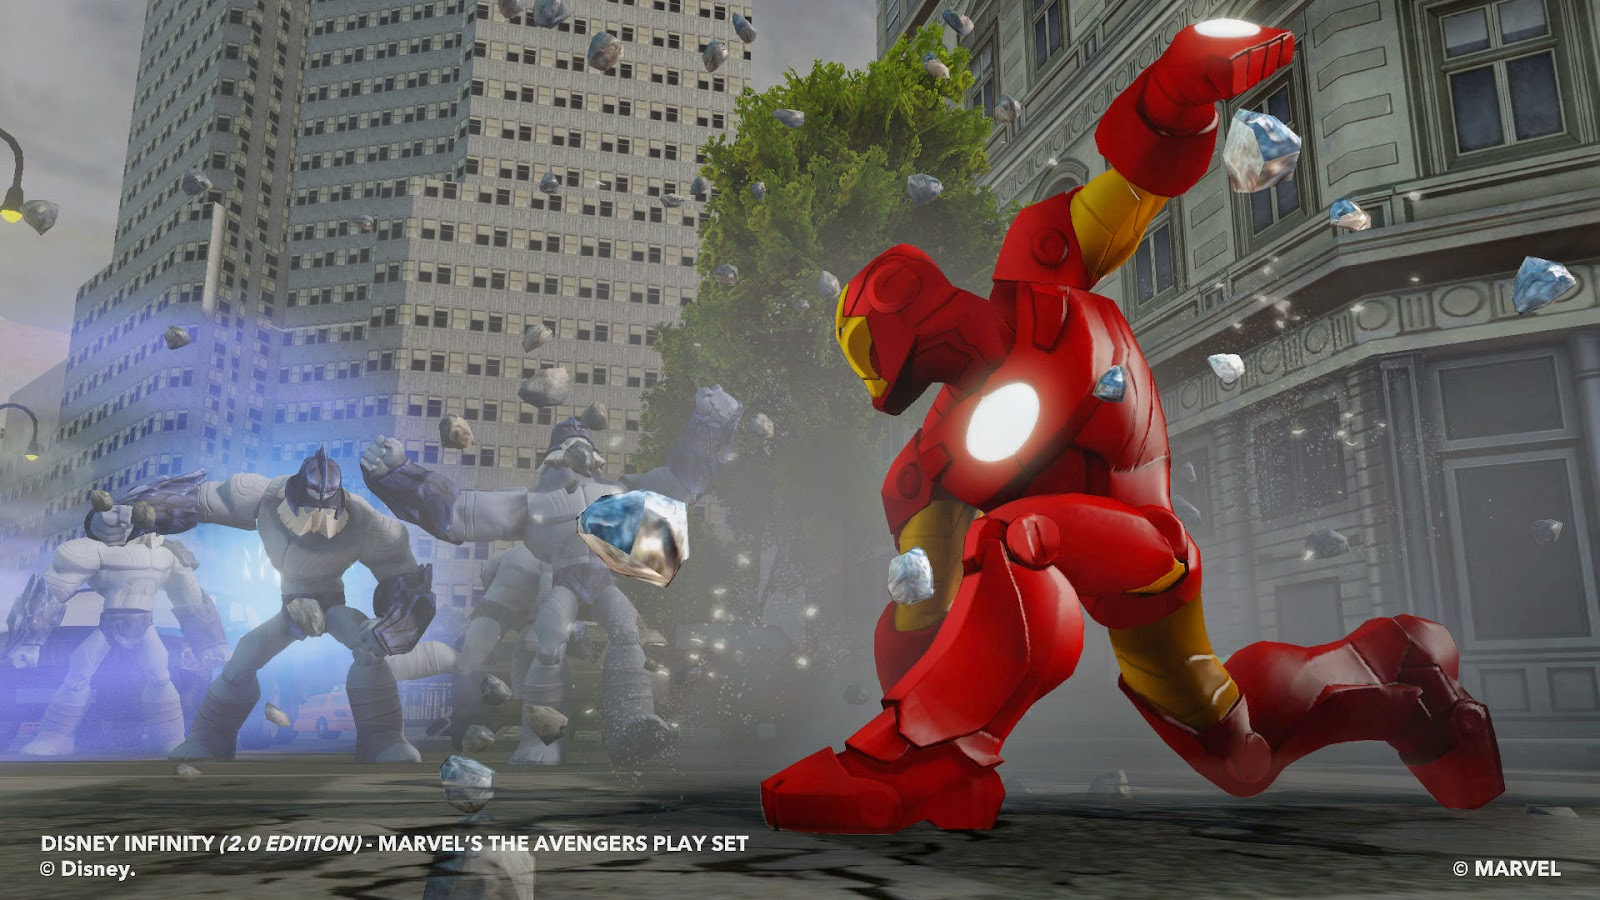 THE AVENGERS - DISNEY INFINITY - MARVEL SUPER HEROES (2.0 EDITION)